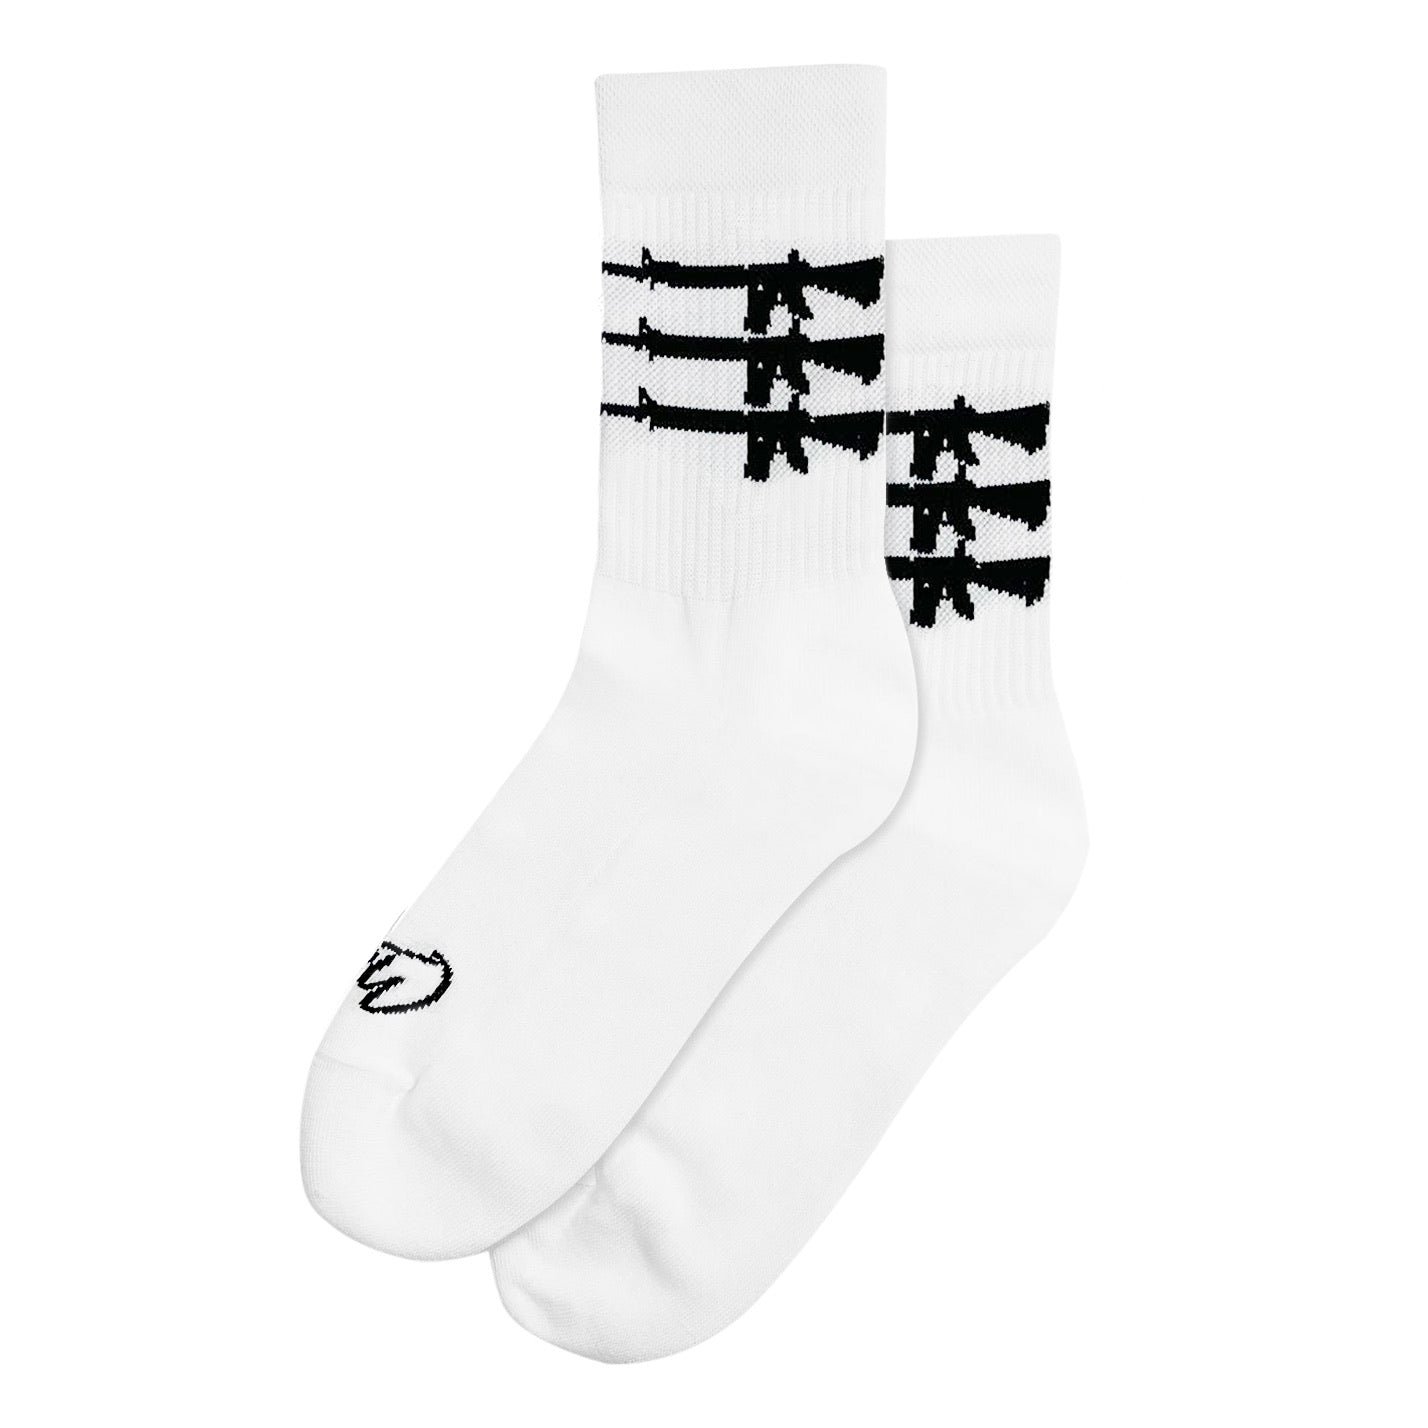 """Triplegun"" Socks - White"